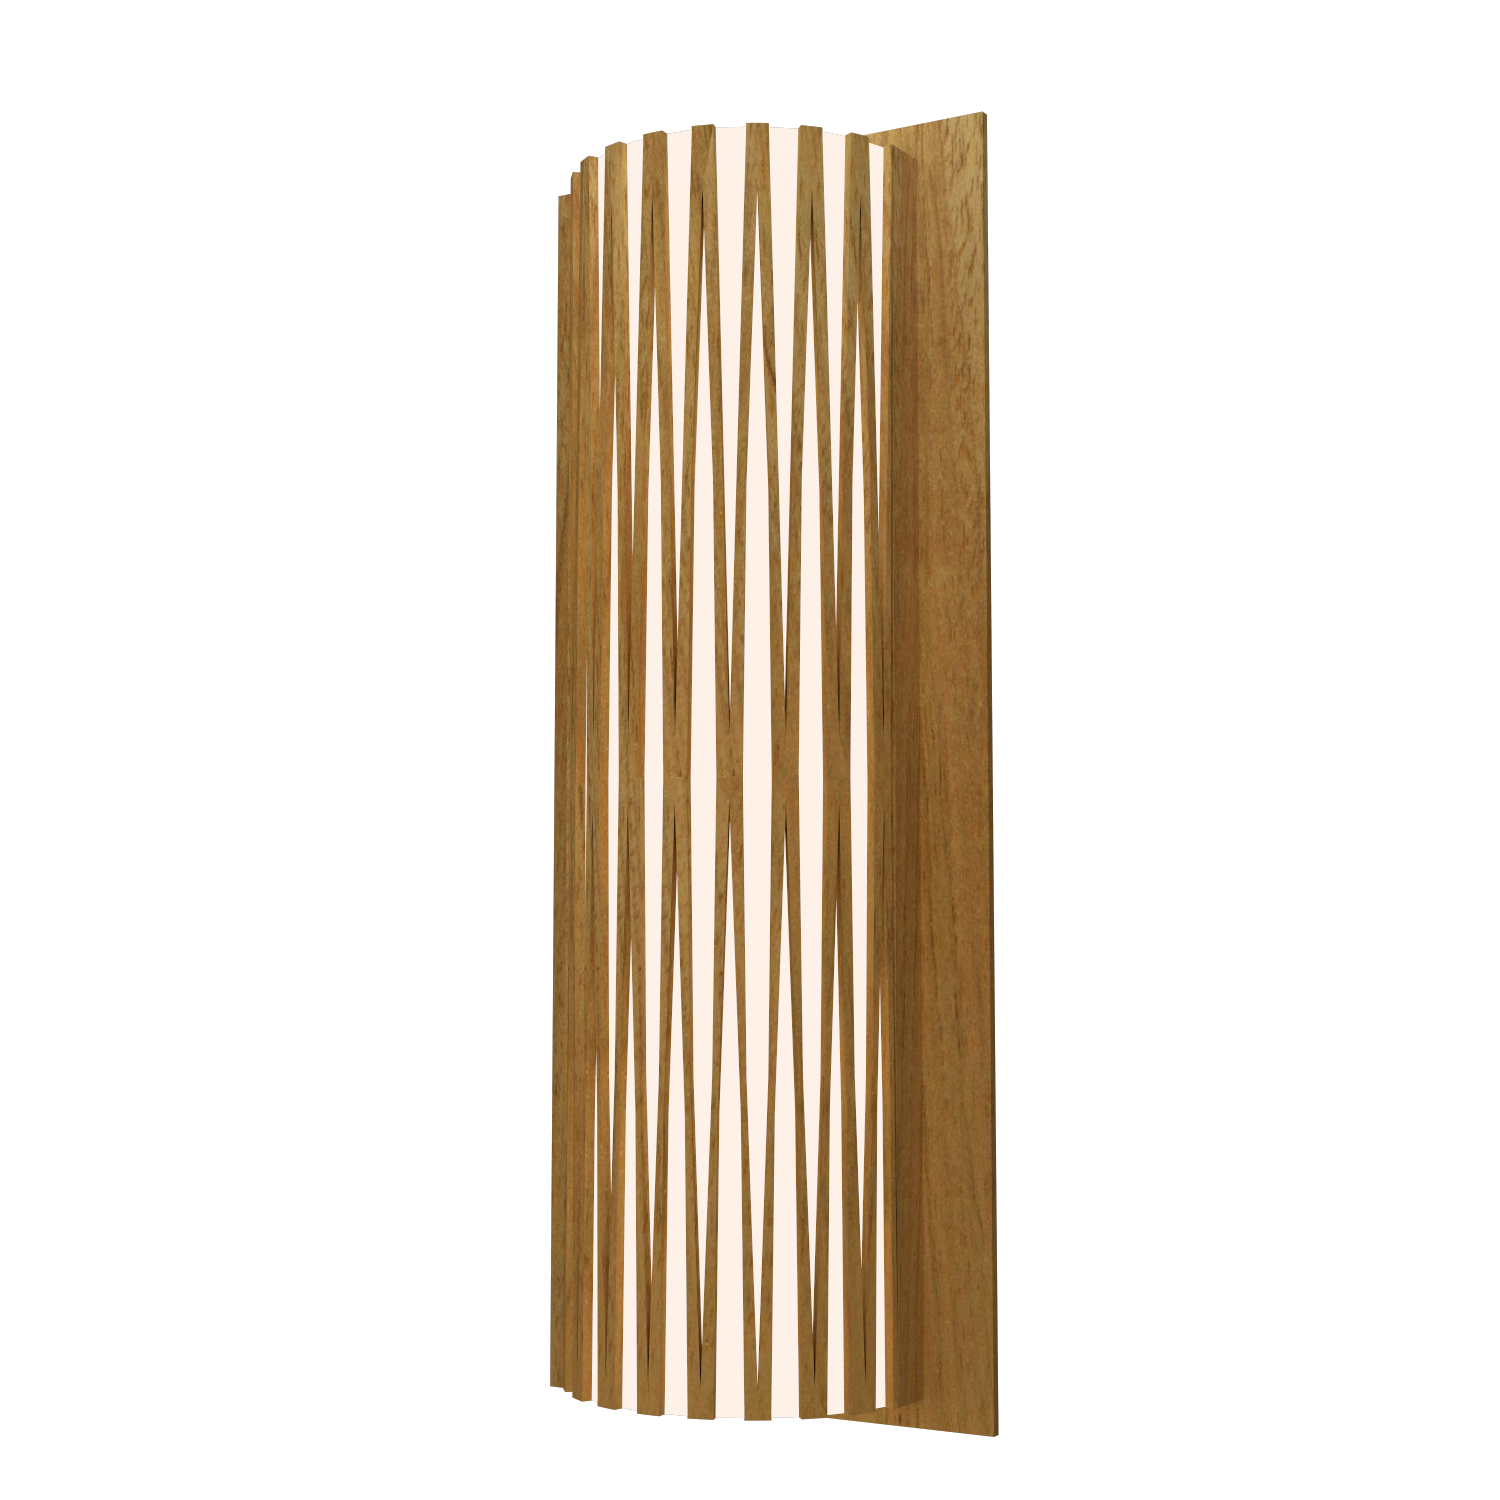 Wall Lamp Accord Living Hinges 4071 - Living Hinges Line Accord Lighting | 09. Louro Freijó